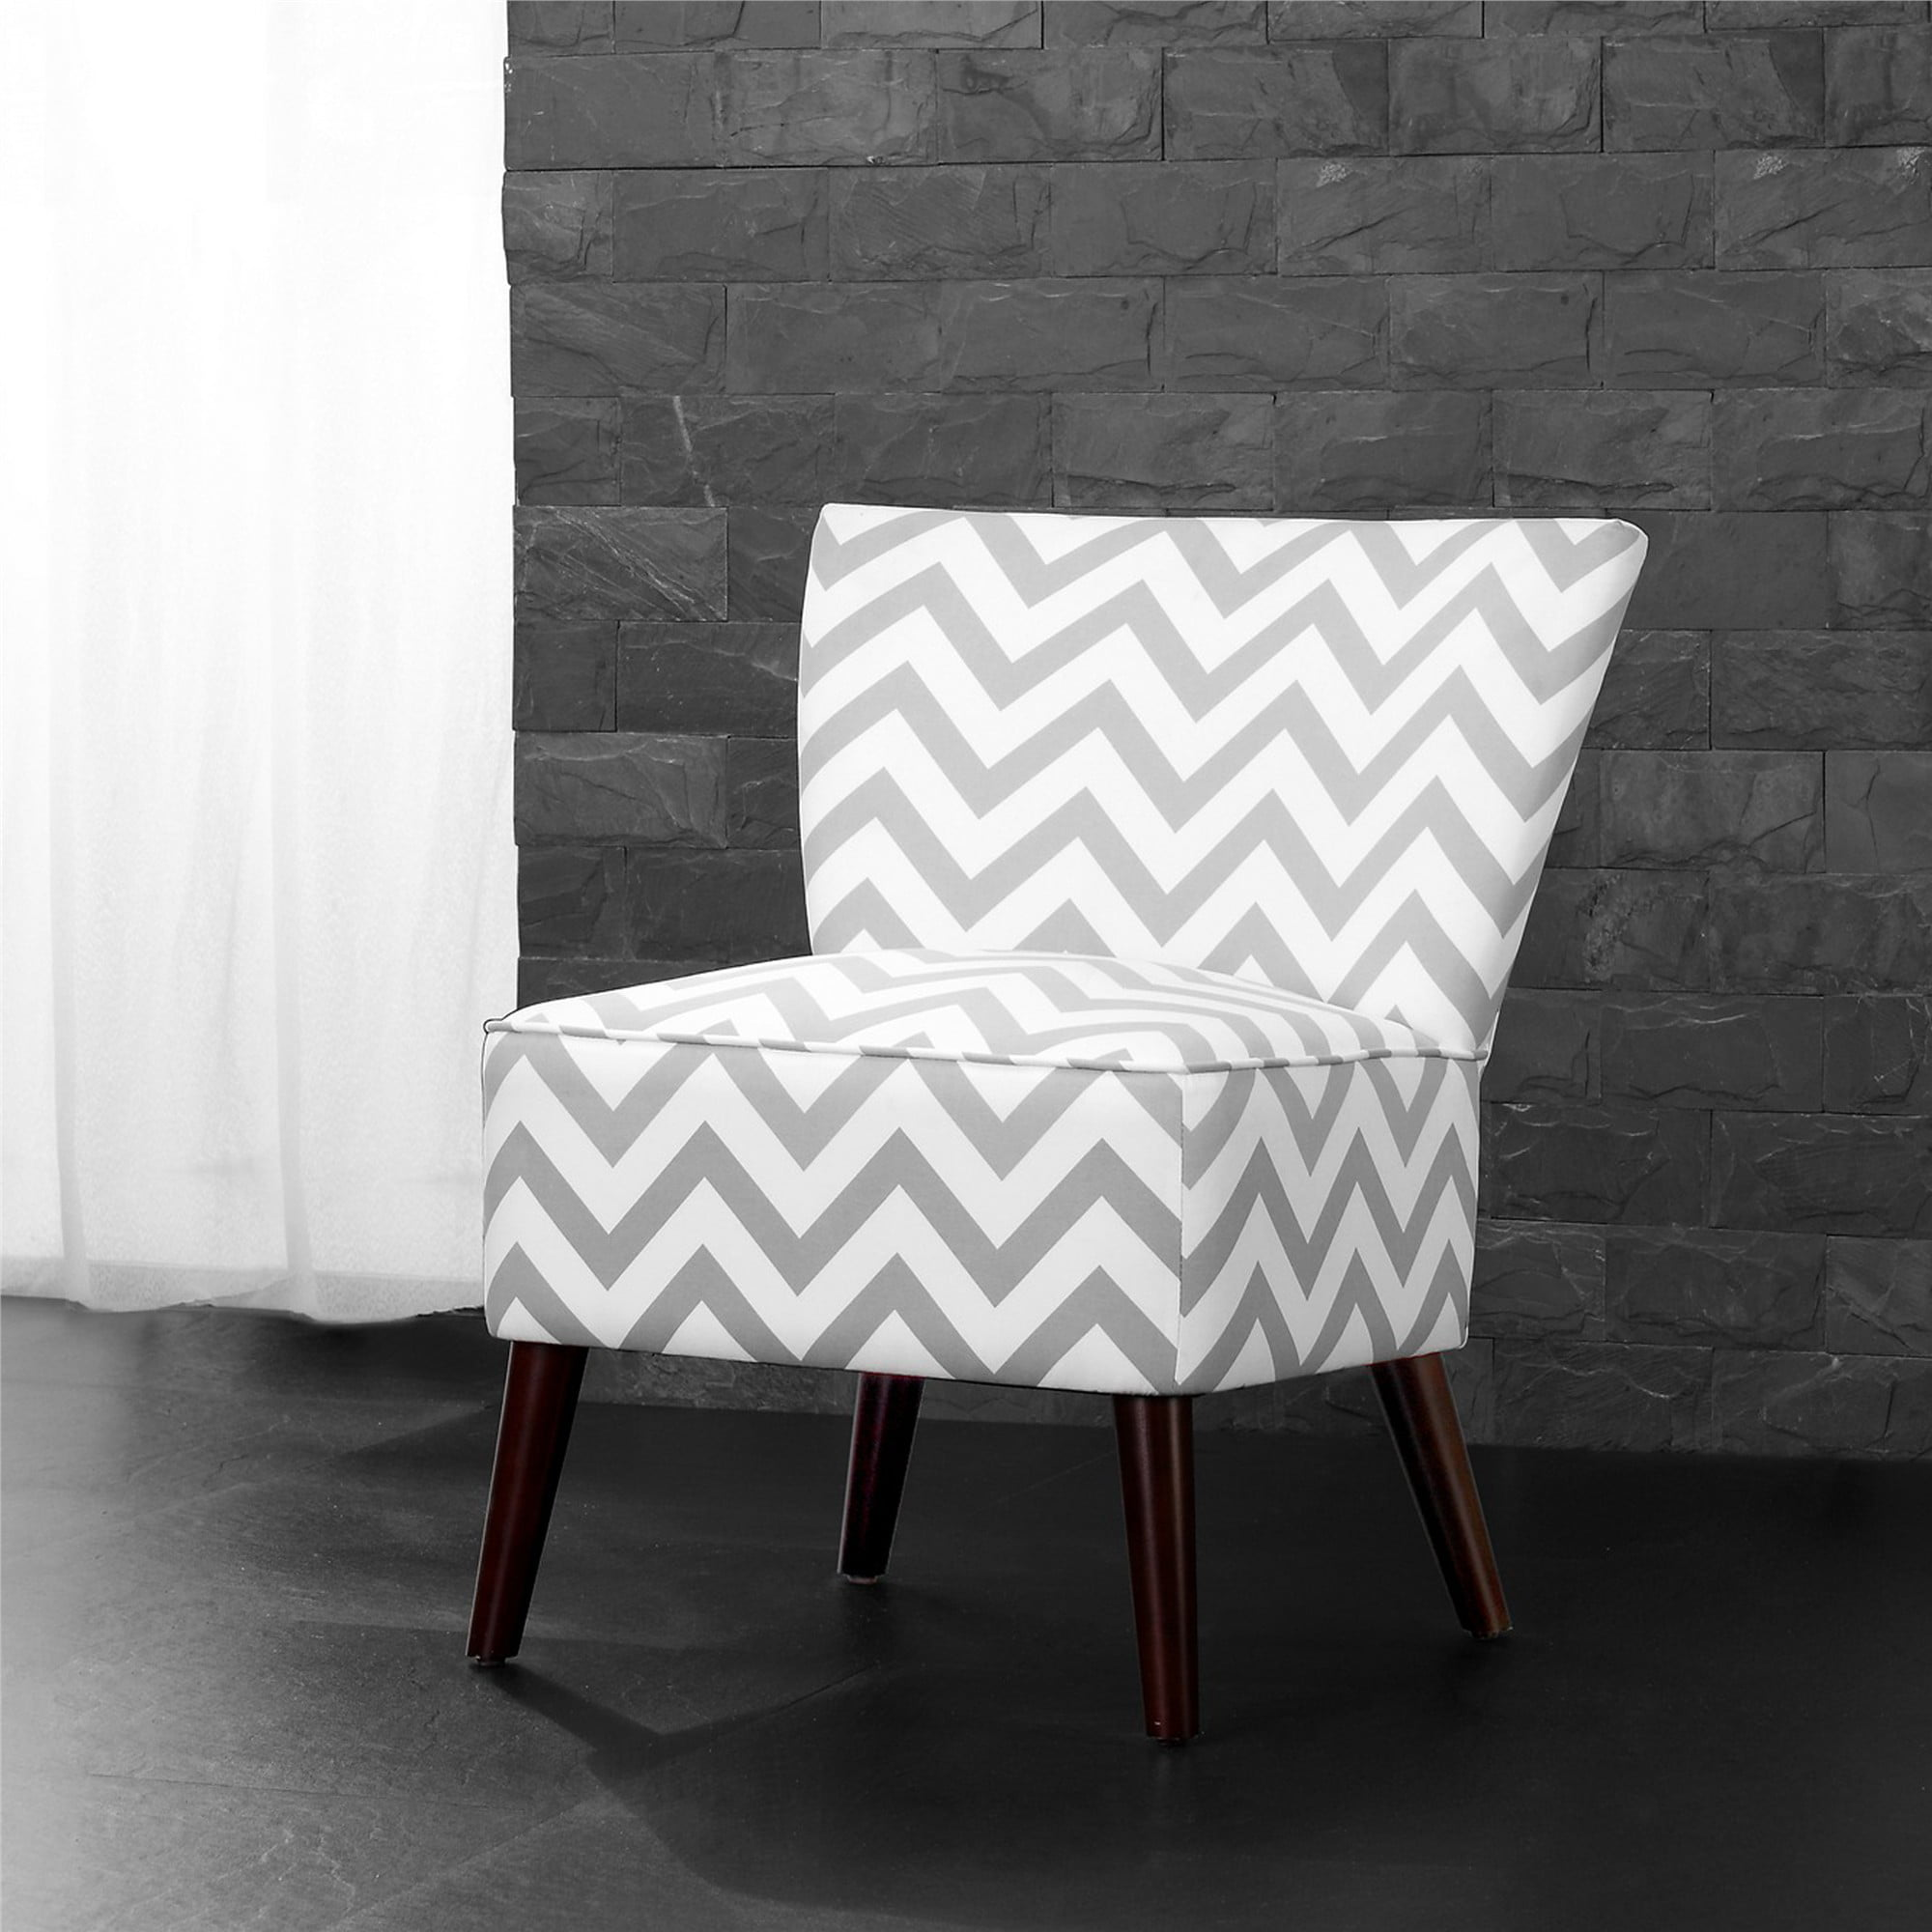 Prime Dorel Living Kinsley Chevron Accent Chair Gray And White Walmart Com Caraccident5 Cool Chair Designs And Ideas Caraccident5Info